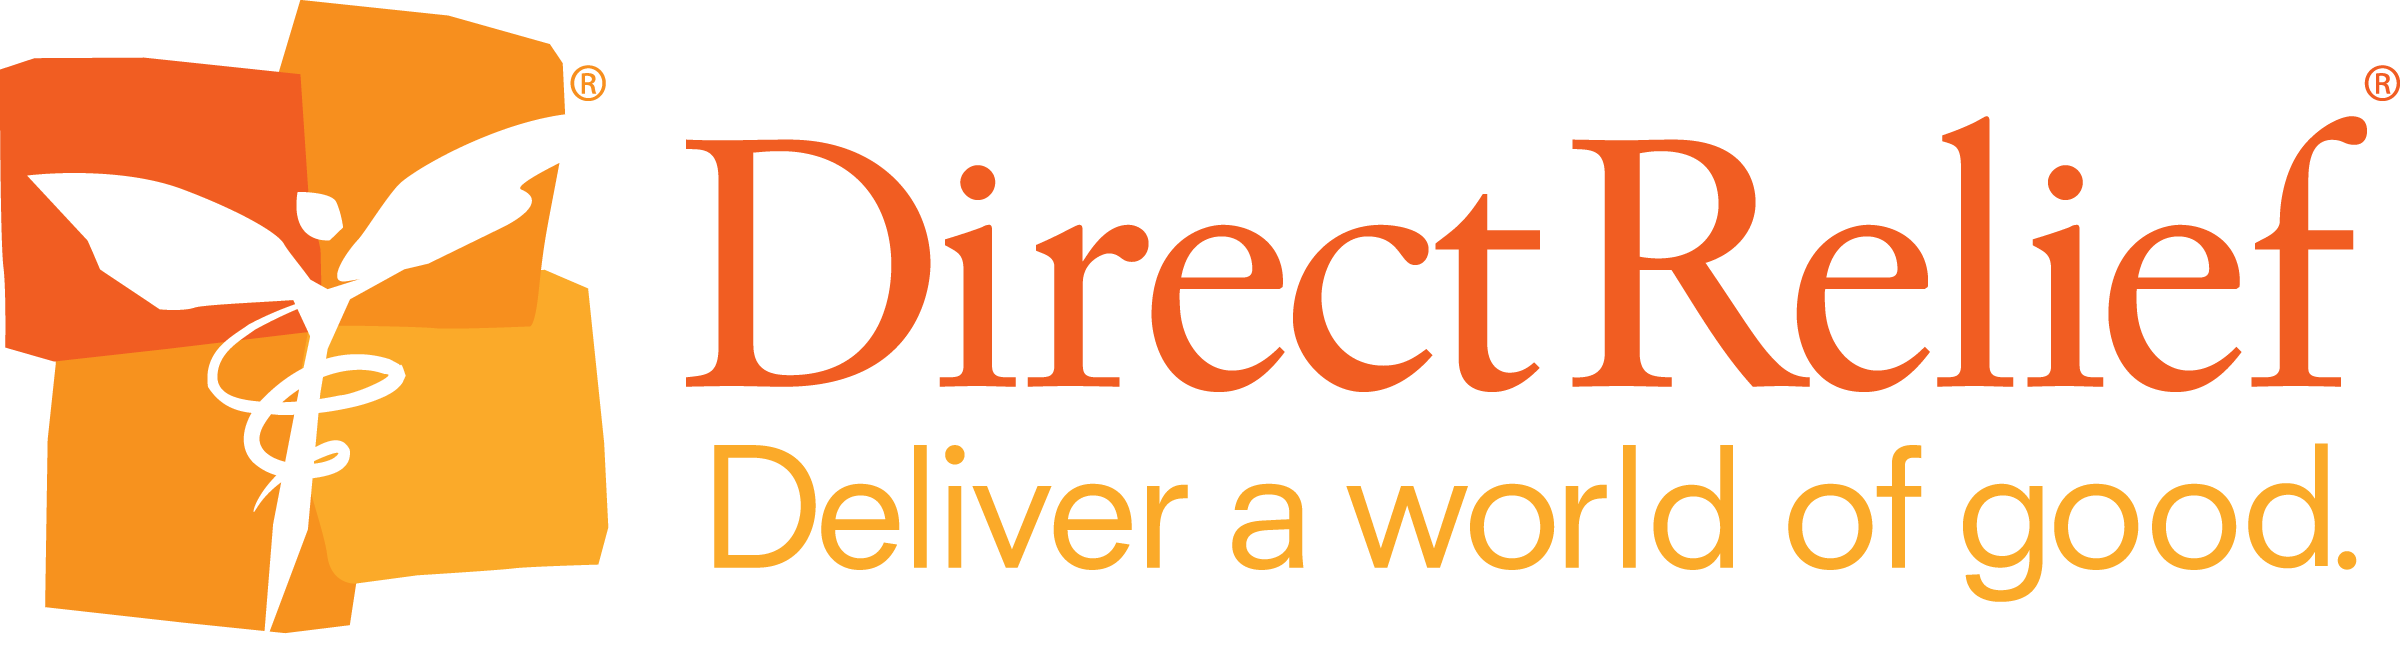 Direct Relief_Logo_CMYK_2400x648.png